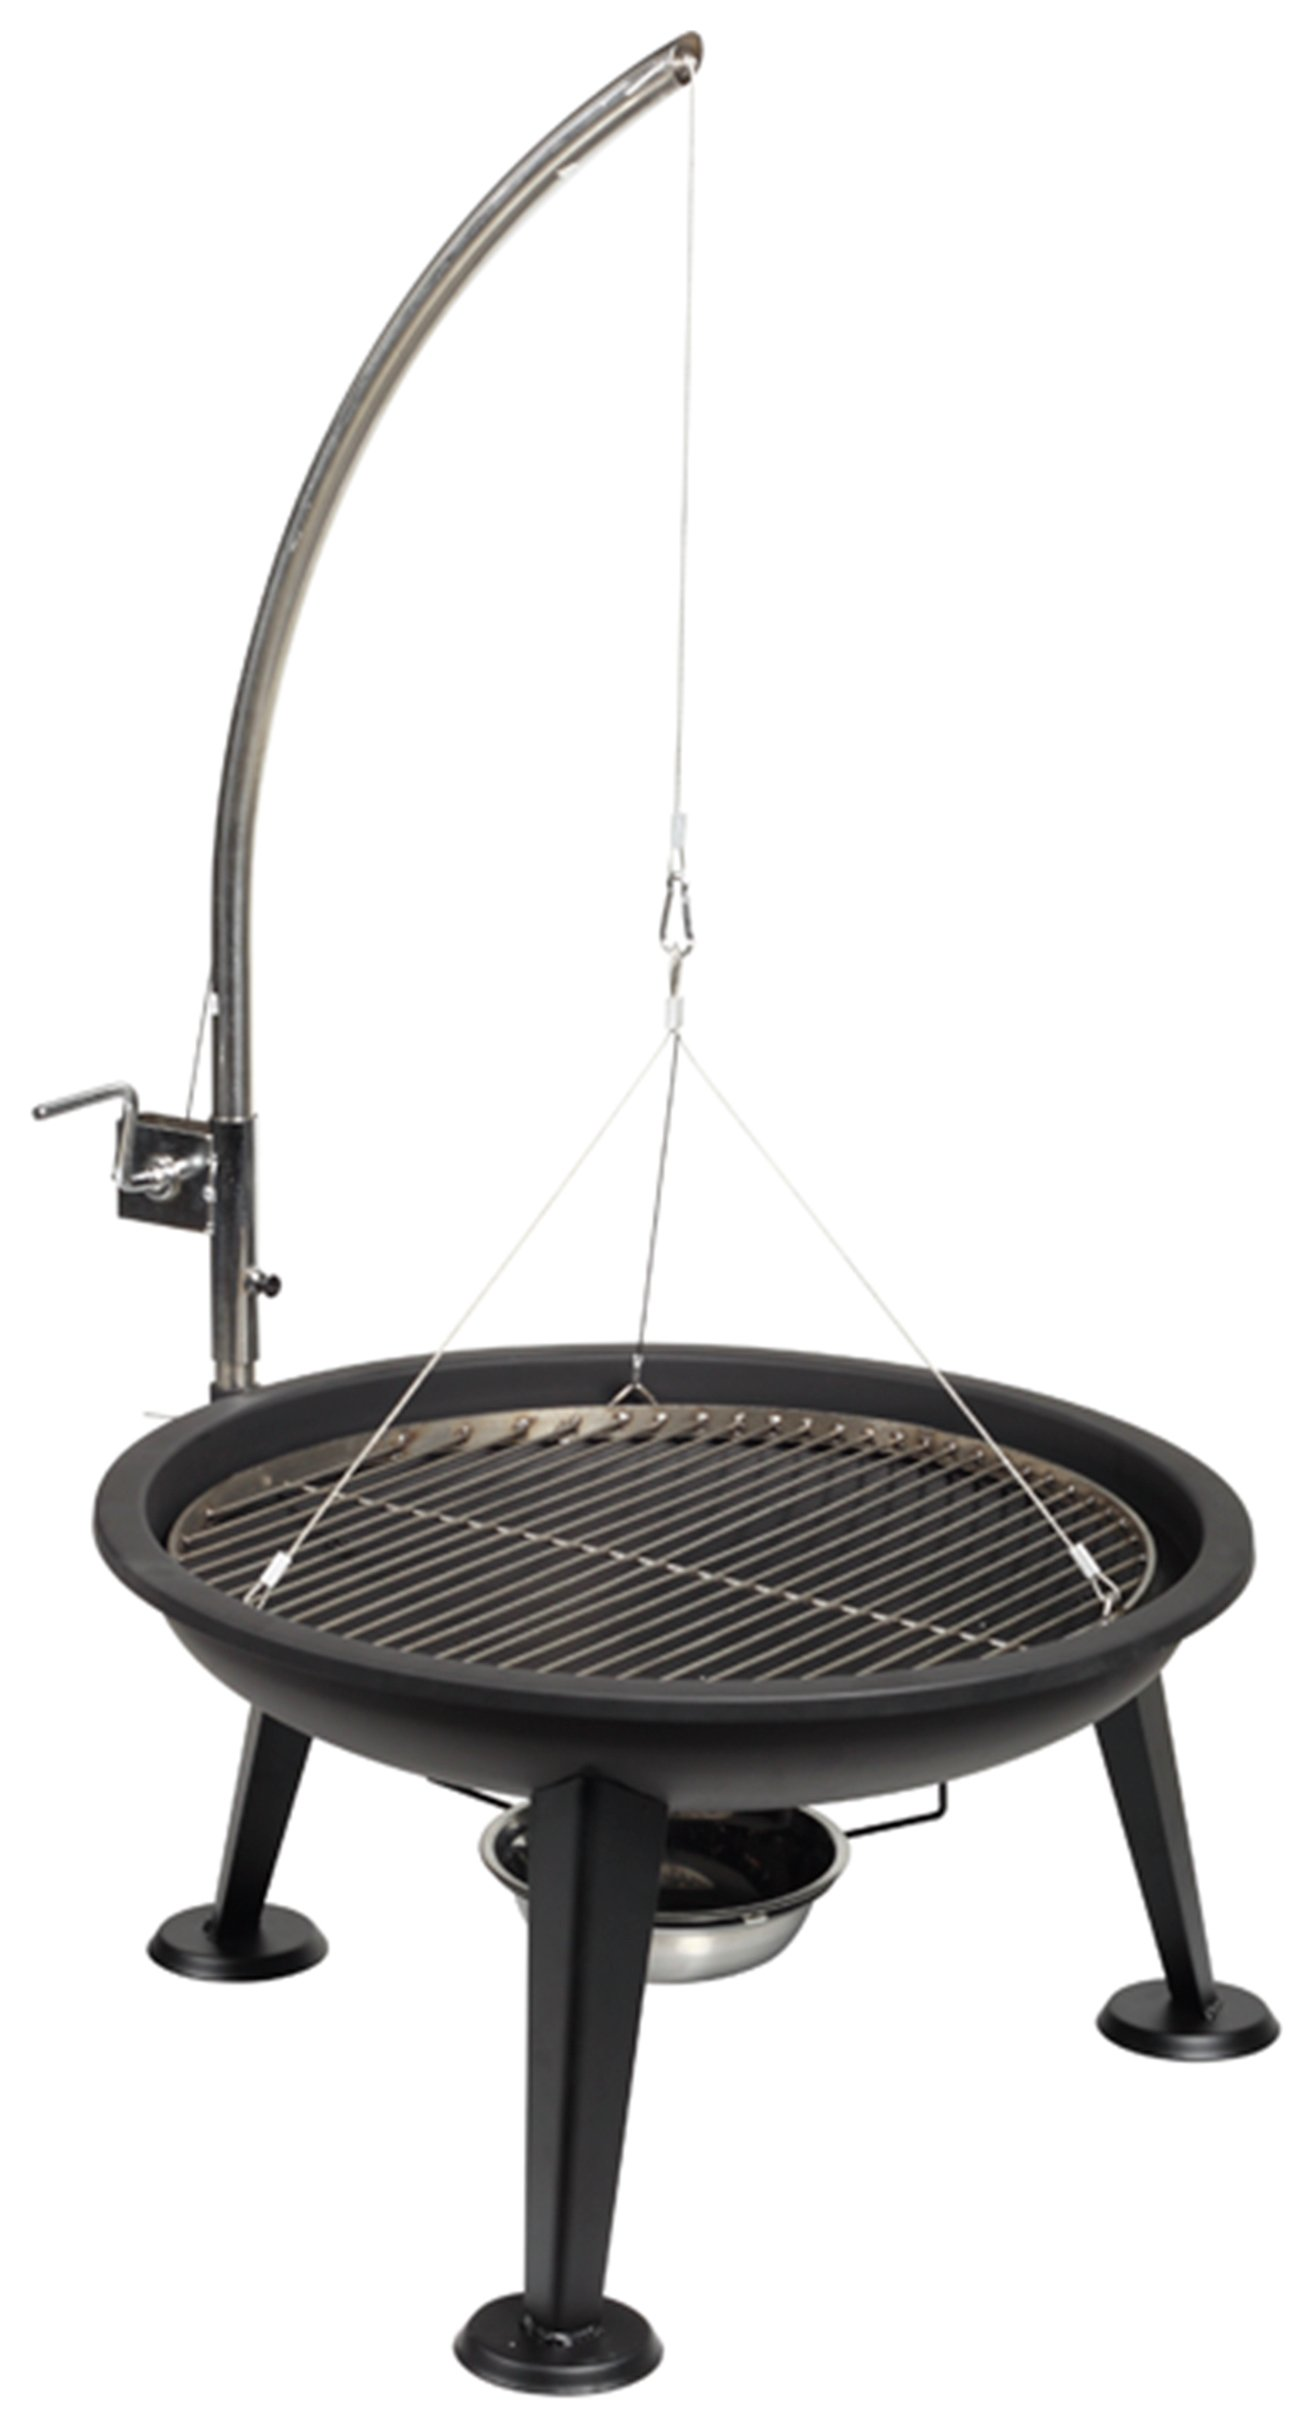 Firefriend Stainless Steel Charcoal BBQ Fire Pit